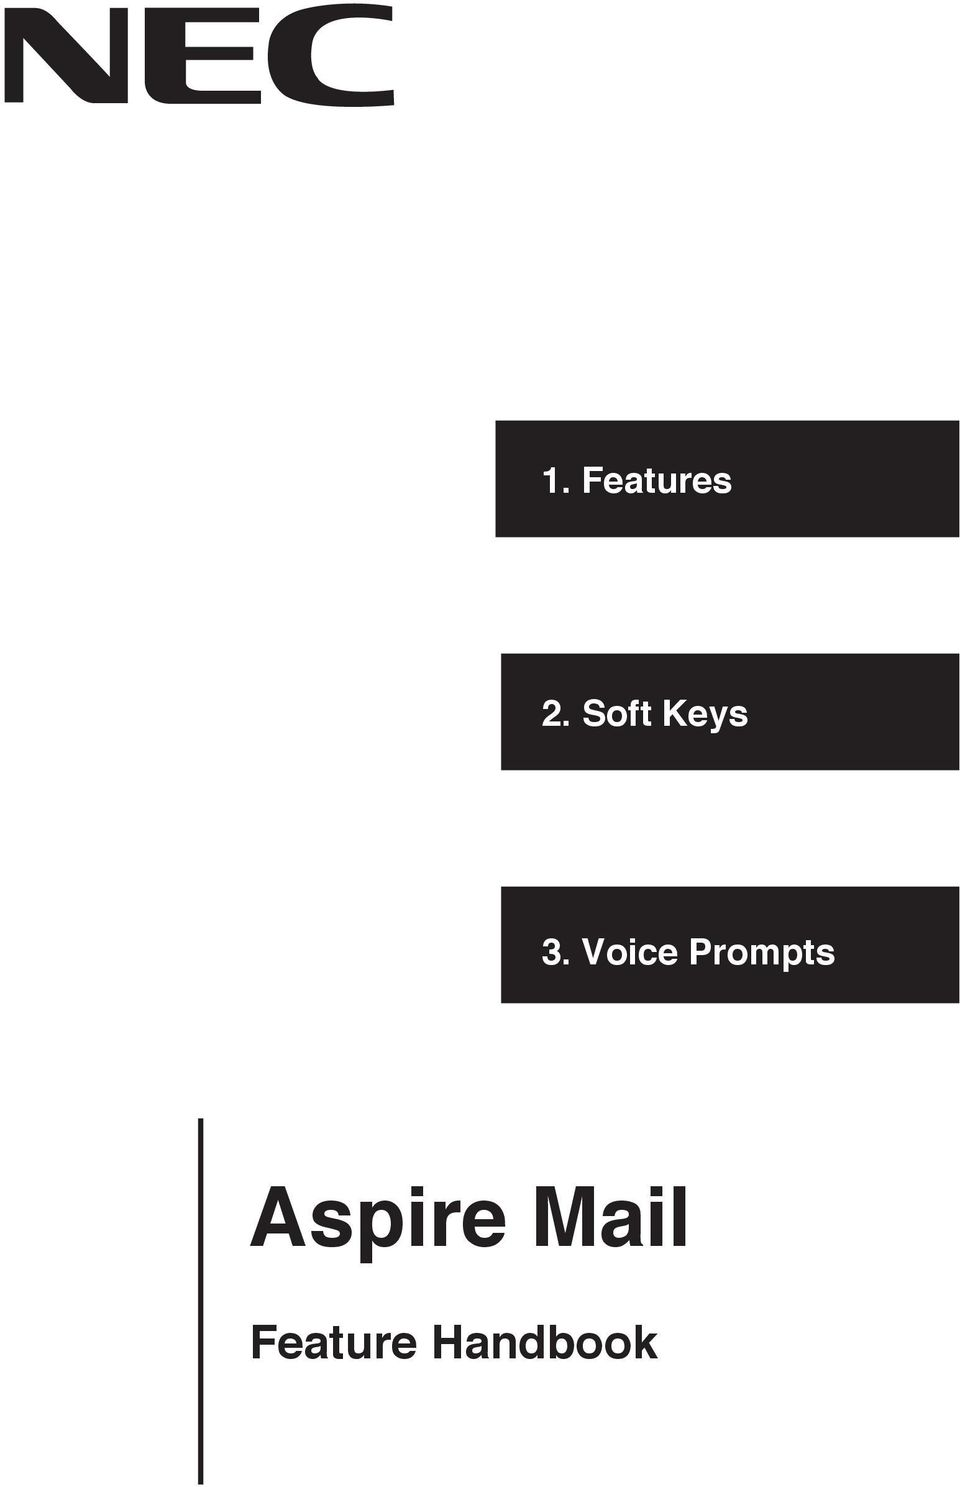 1. Features. 2. Soft Keys. 3. Voice Prompts. Aspire Mail